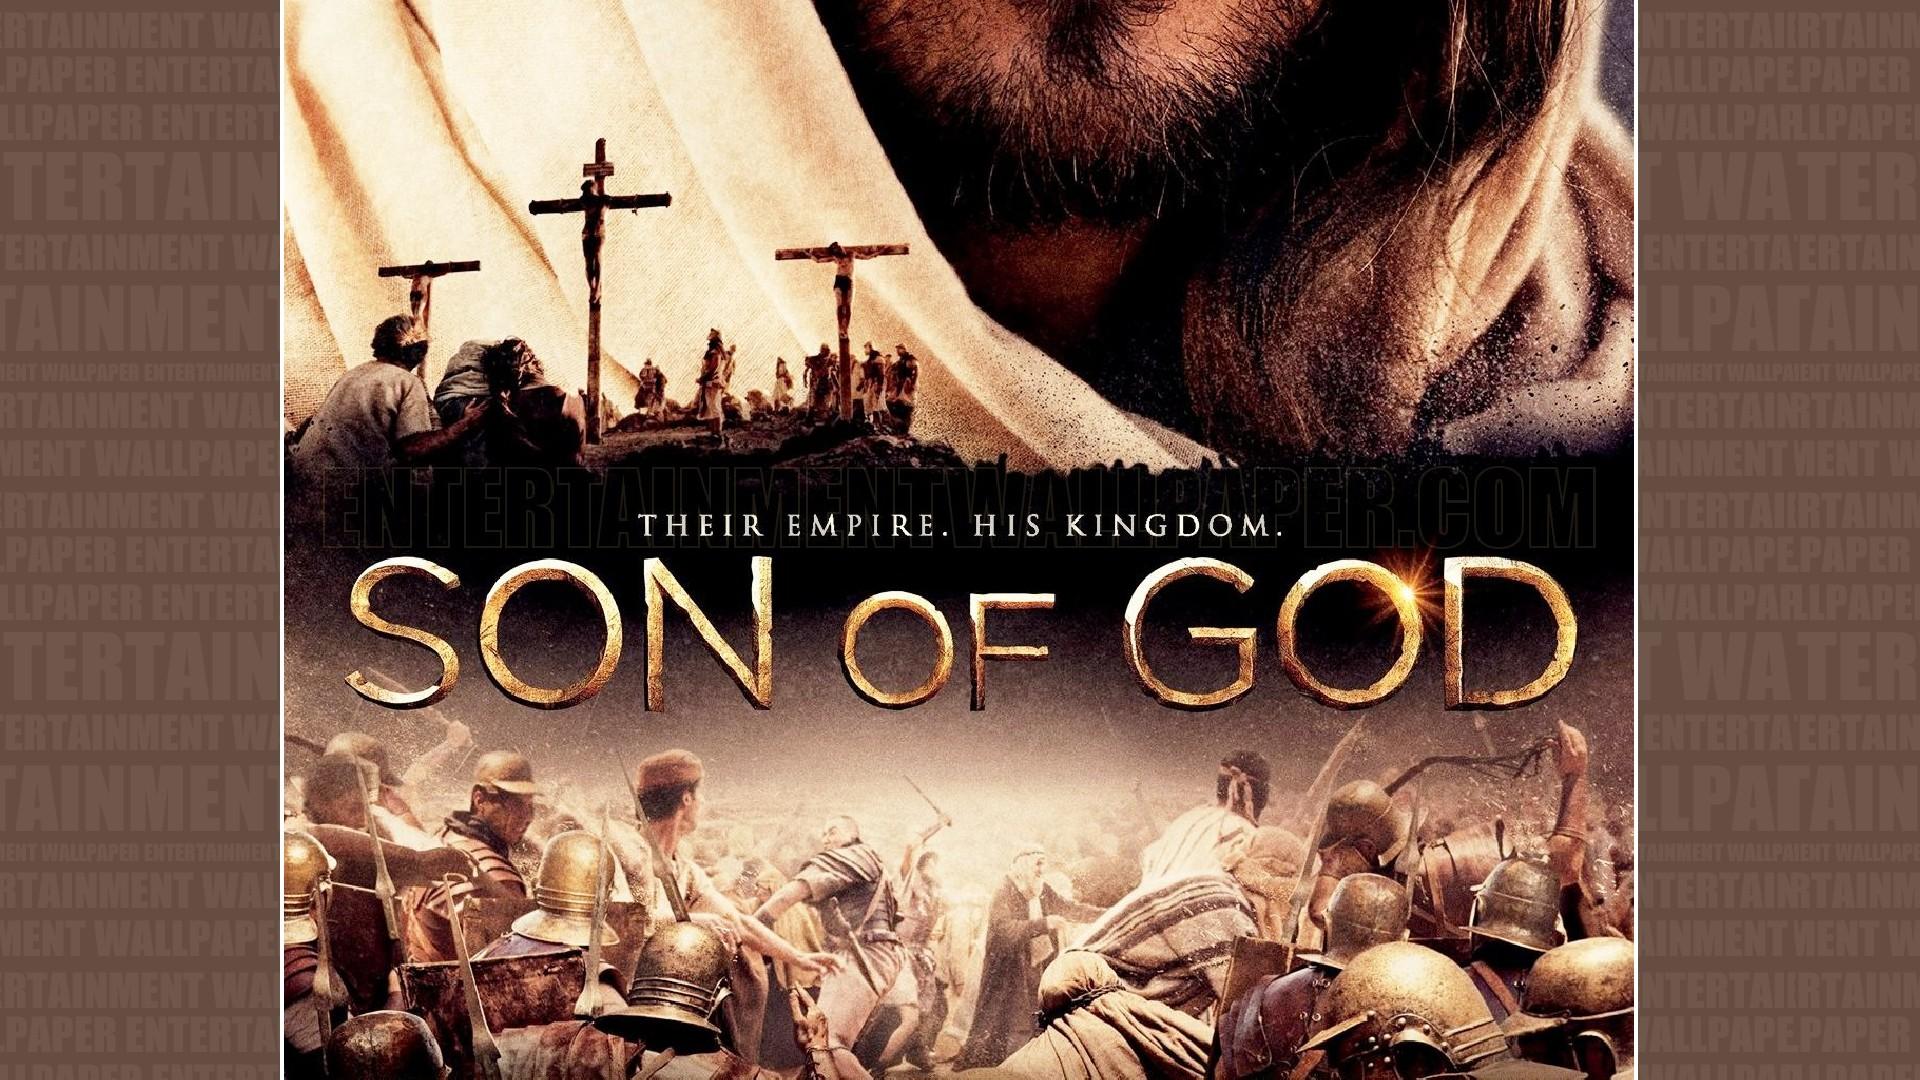 son of god wallpaper 10043255 size 1920x1080 more son of god wallpaper 1920x1080